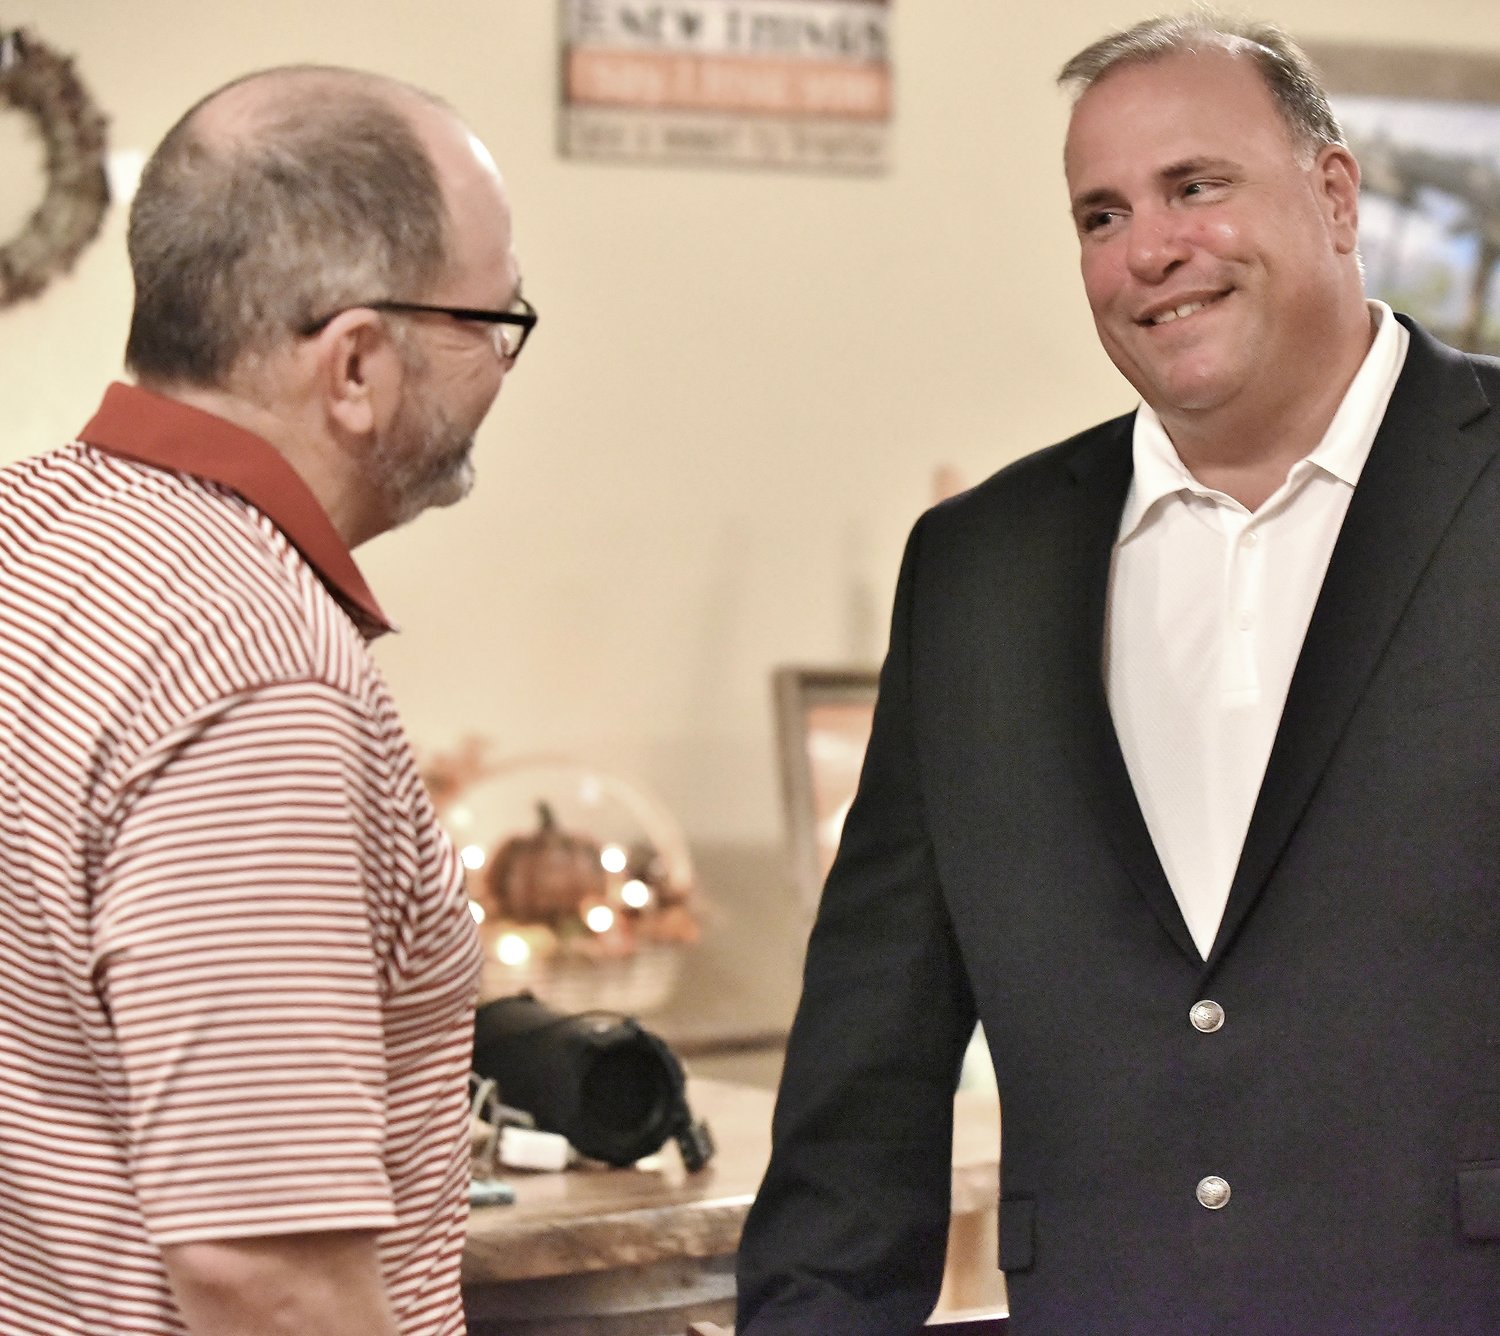 Cartersville Mayor Matt Santini, right, speaks with former Cartersville Mayor Mike Fields at Santini's victory celebration Tuesday night at JZ's in downtown Cartersville.